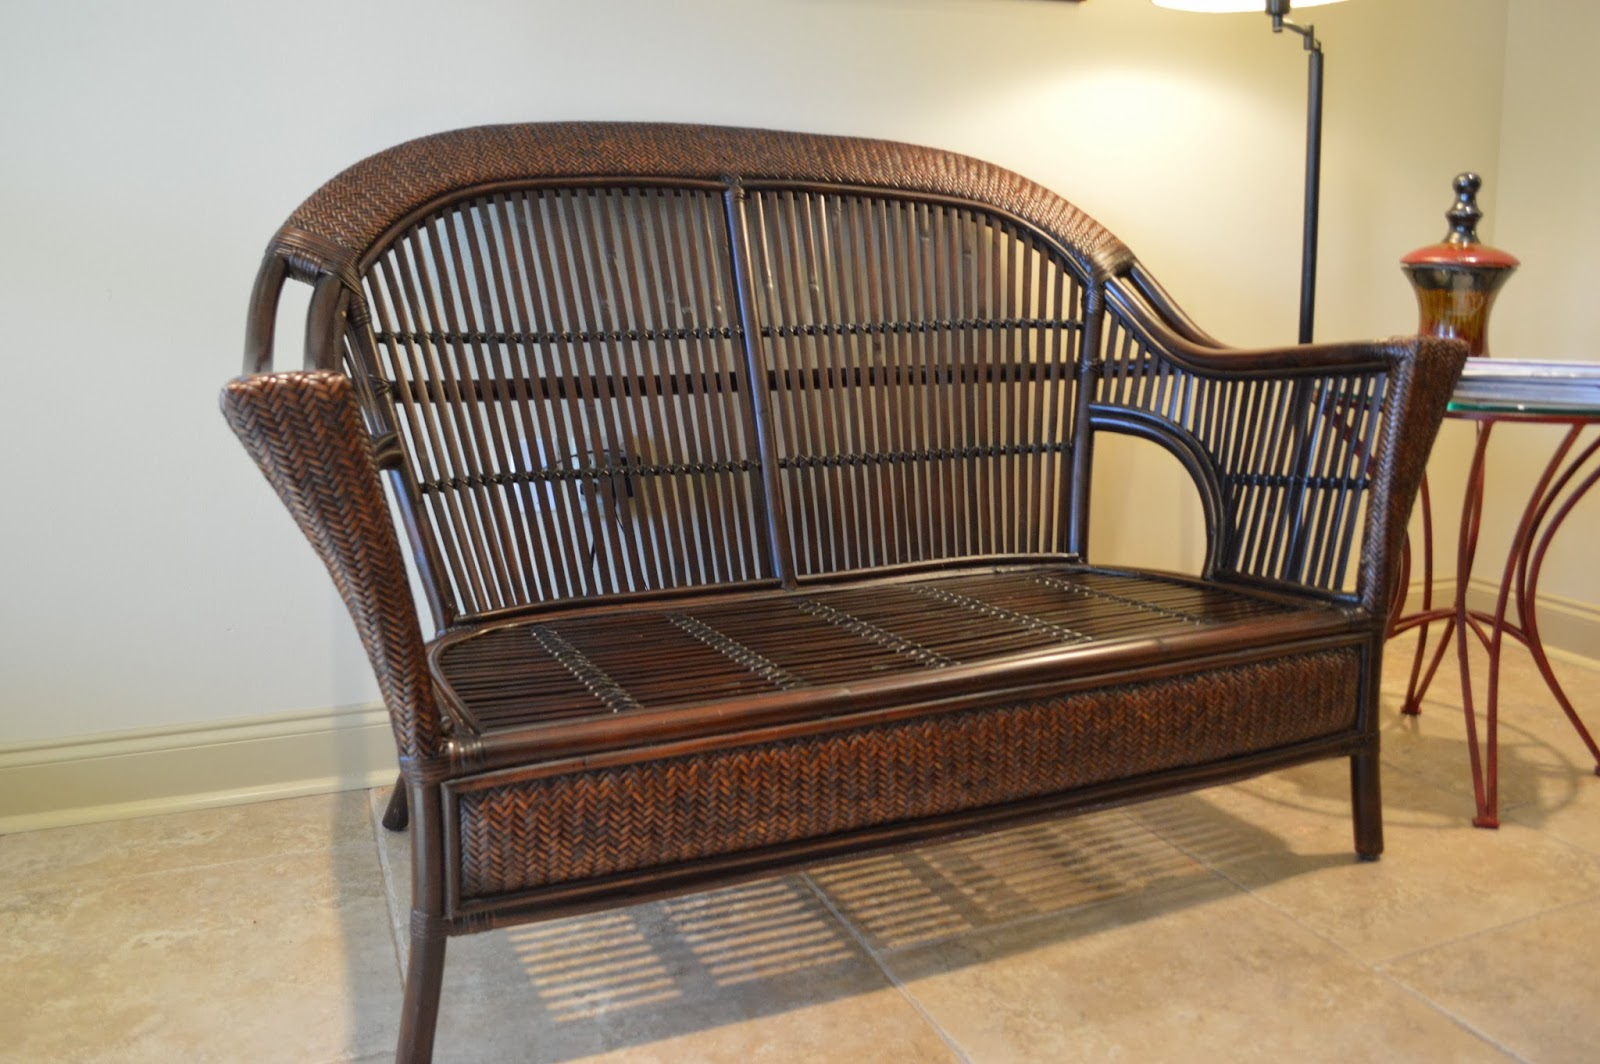 Pier One Rattan Chair Desk Uae Moving Sale Loveseat With Cushion And Pillows 250